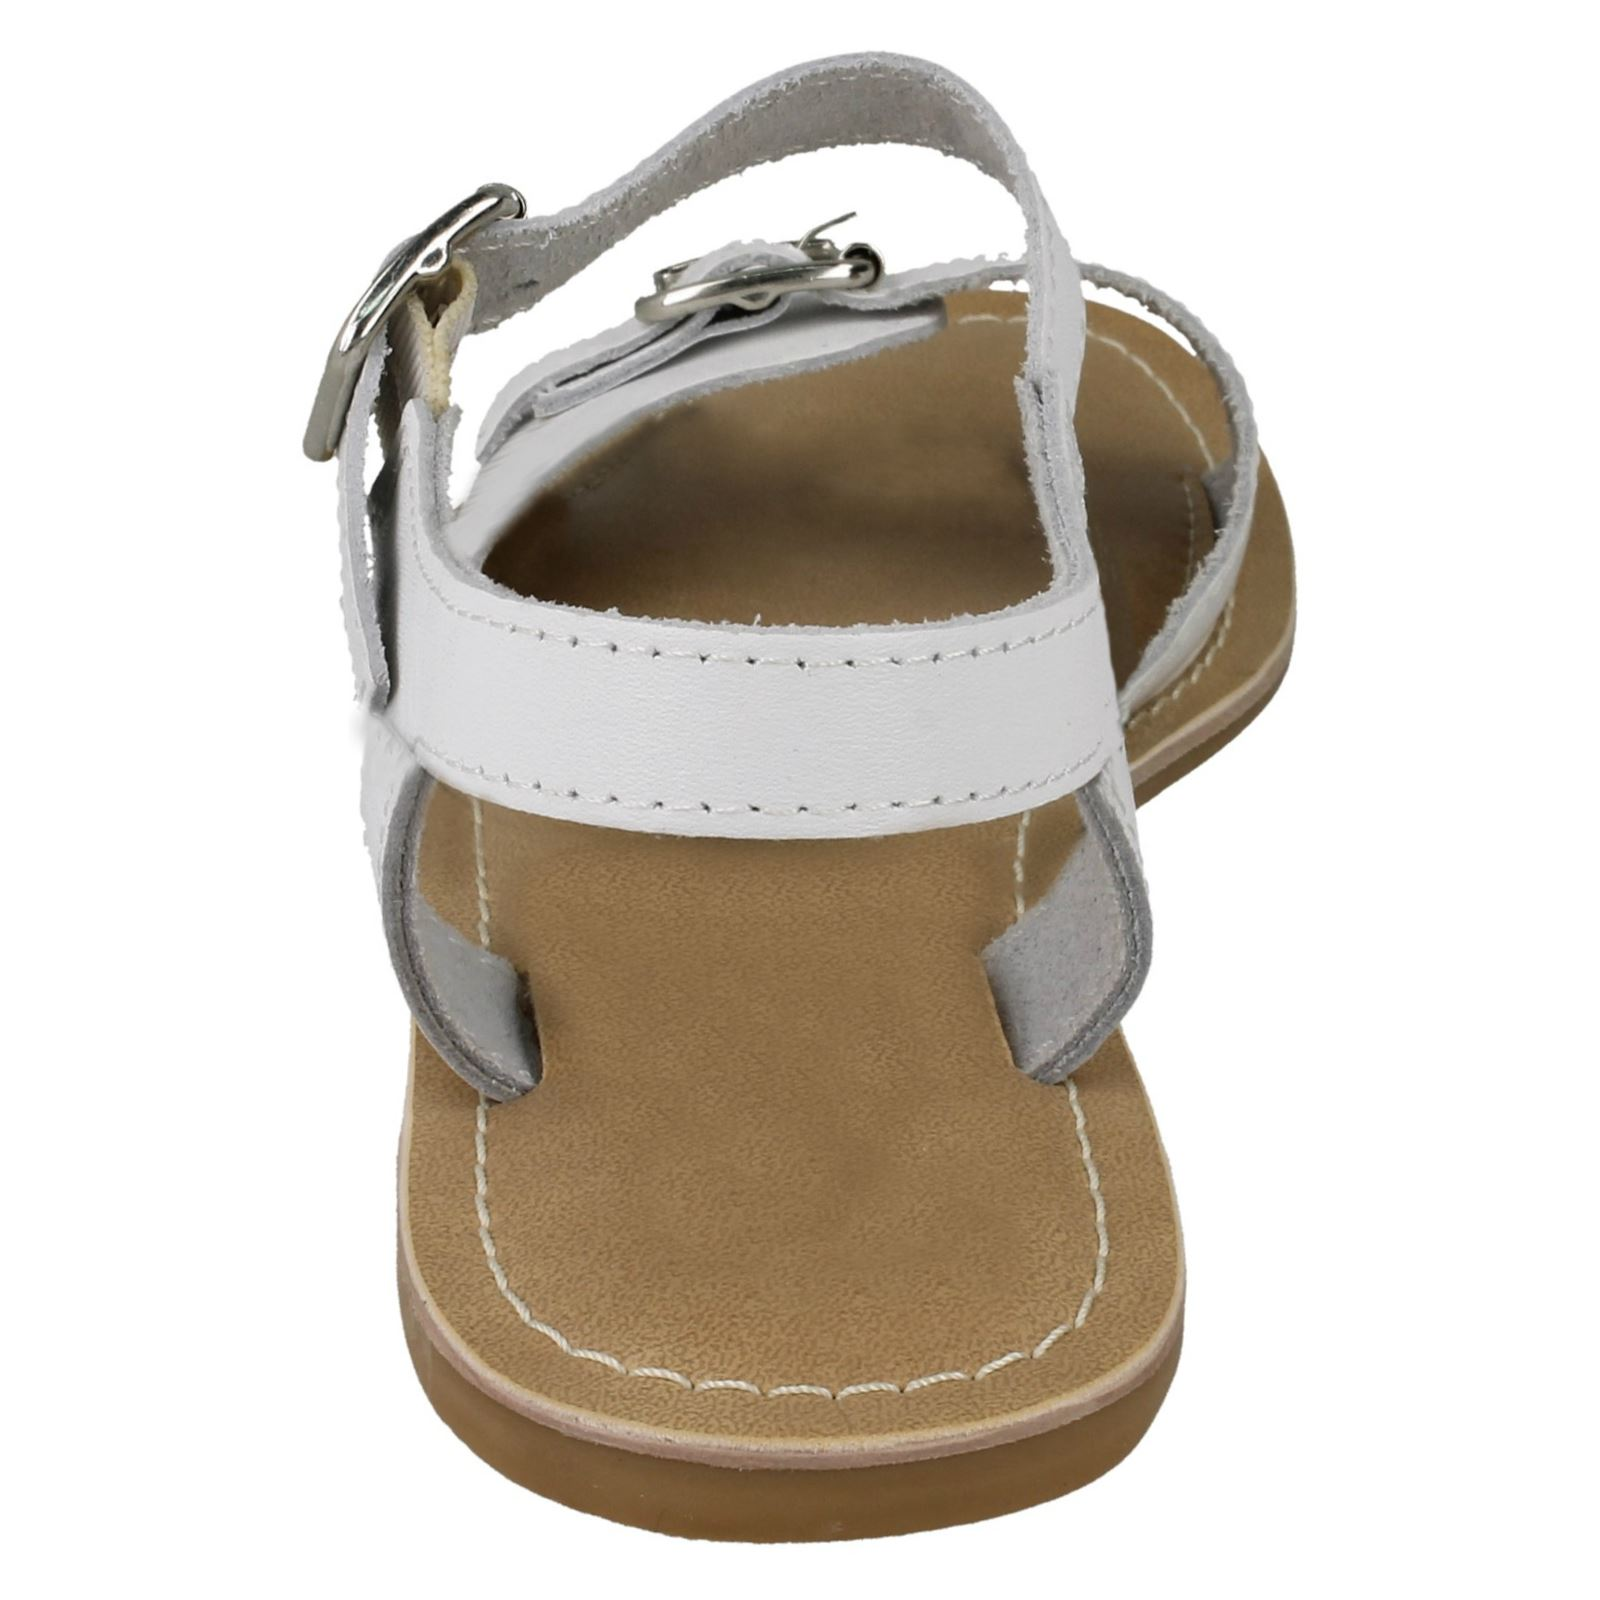 Ladies Leather Collection Ankle Strap Buckle Fastening Classic Sandals F0R0149